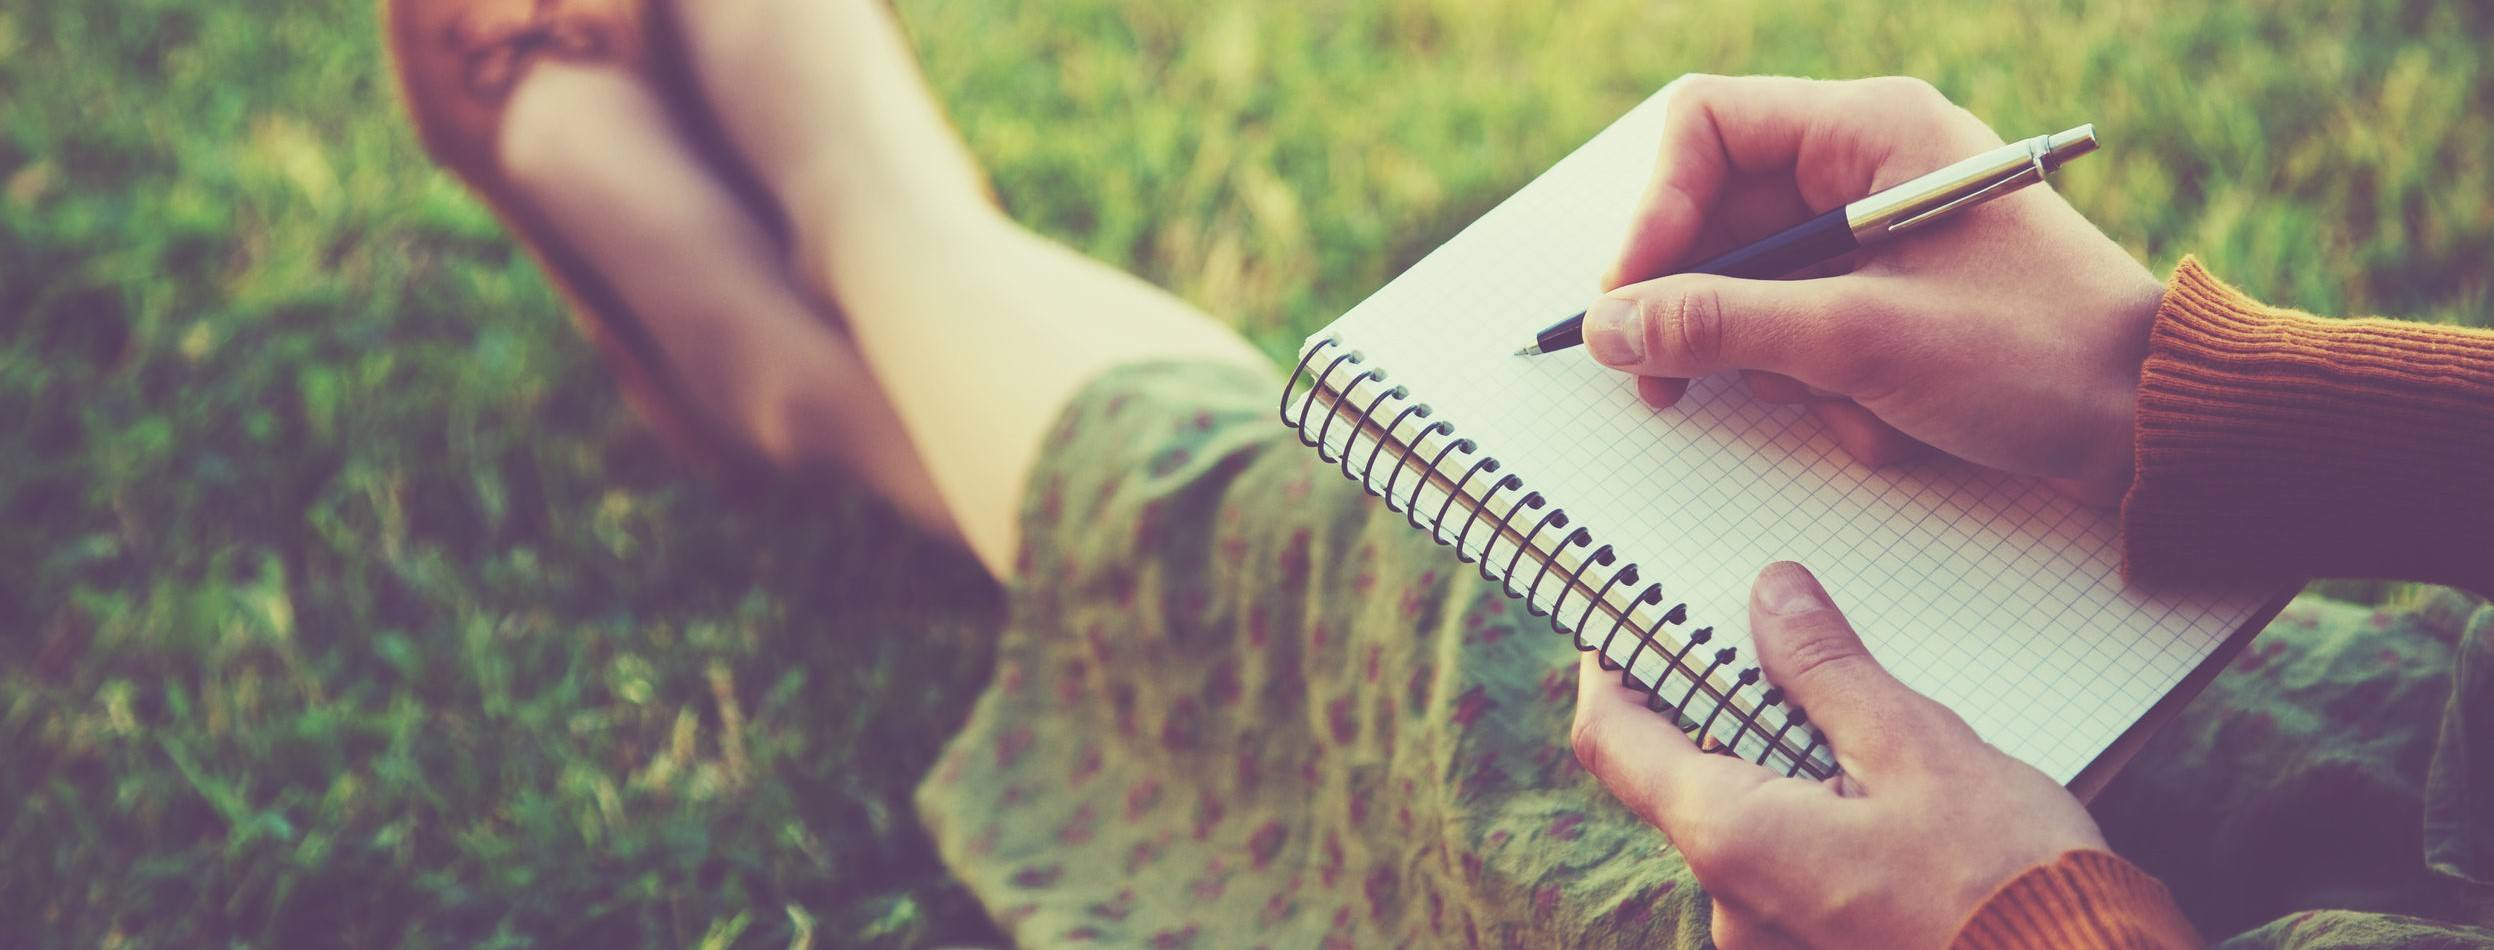 A photo of someone journaling their fitness progress.